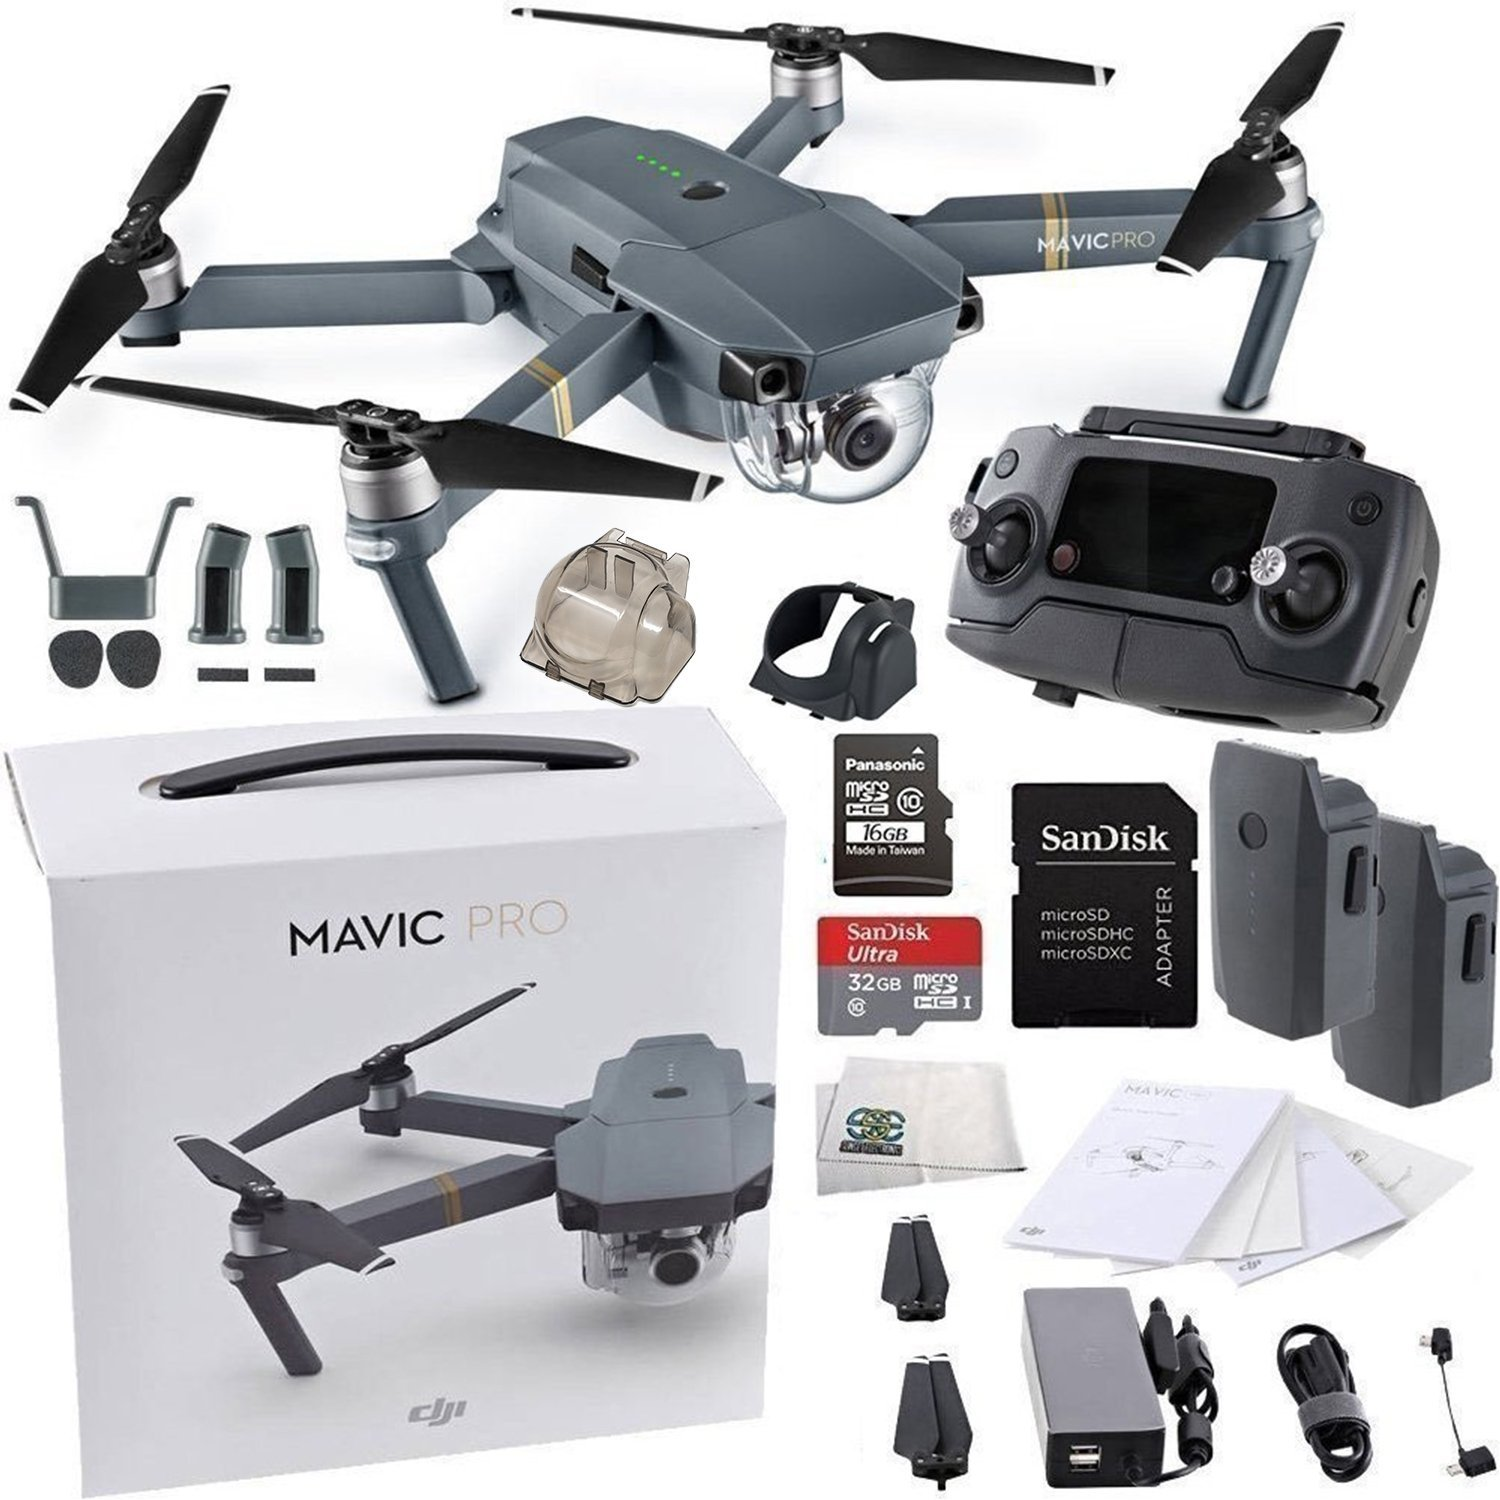 DJI Mavic Pro Collapsible Quadcopter Drone Essentials Bundle w/ Manufacturer's Accessories + Intelligent Flight Battery, SanDisk 32GB UHS-I Card, USB-C Cable, Cleaning Cloth